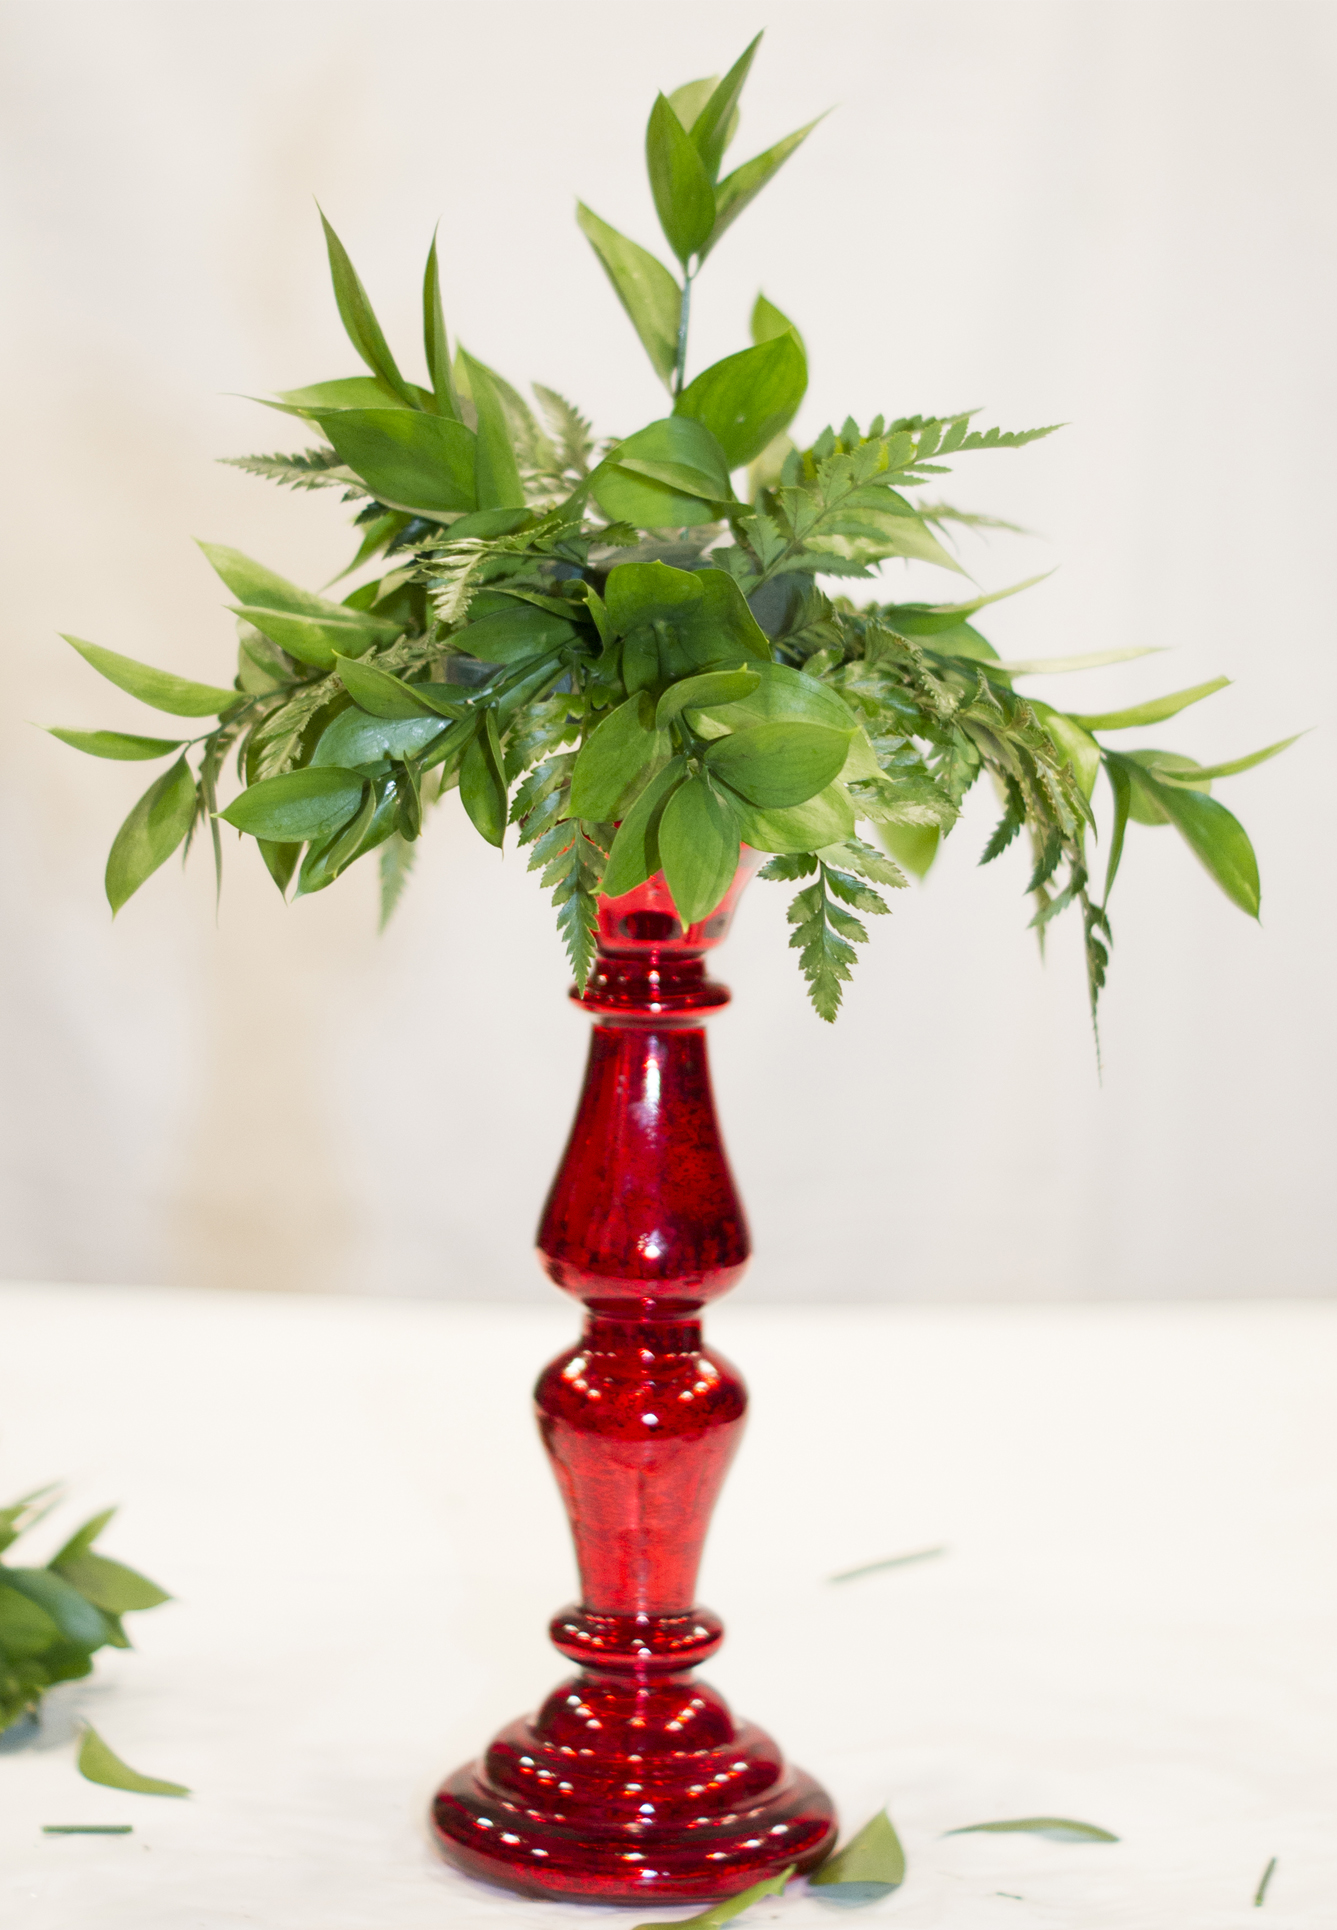 Italian ruscus in centerpiece